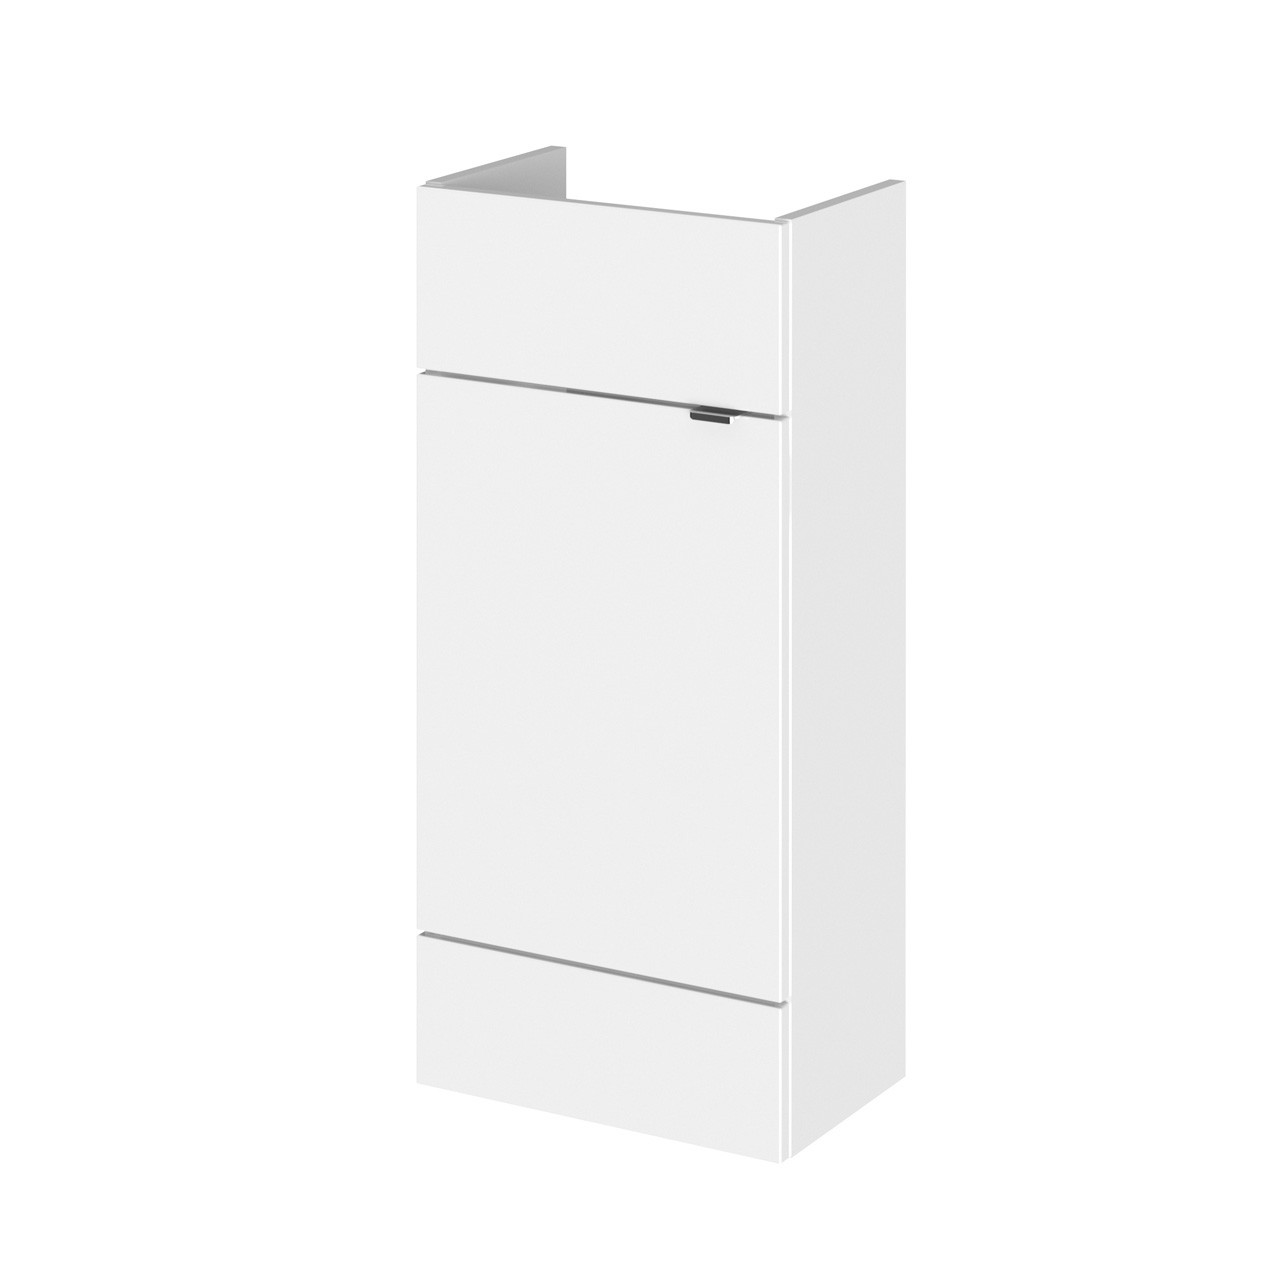 https://www.mepstock.co.uk/admin/images/hudson_reed_white_gloss_400mm_comapct_vanity_unit_off103_3.jpg